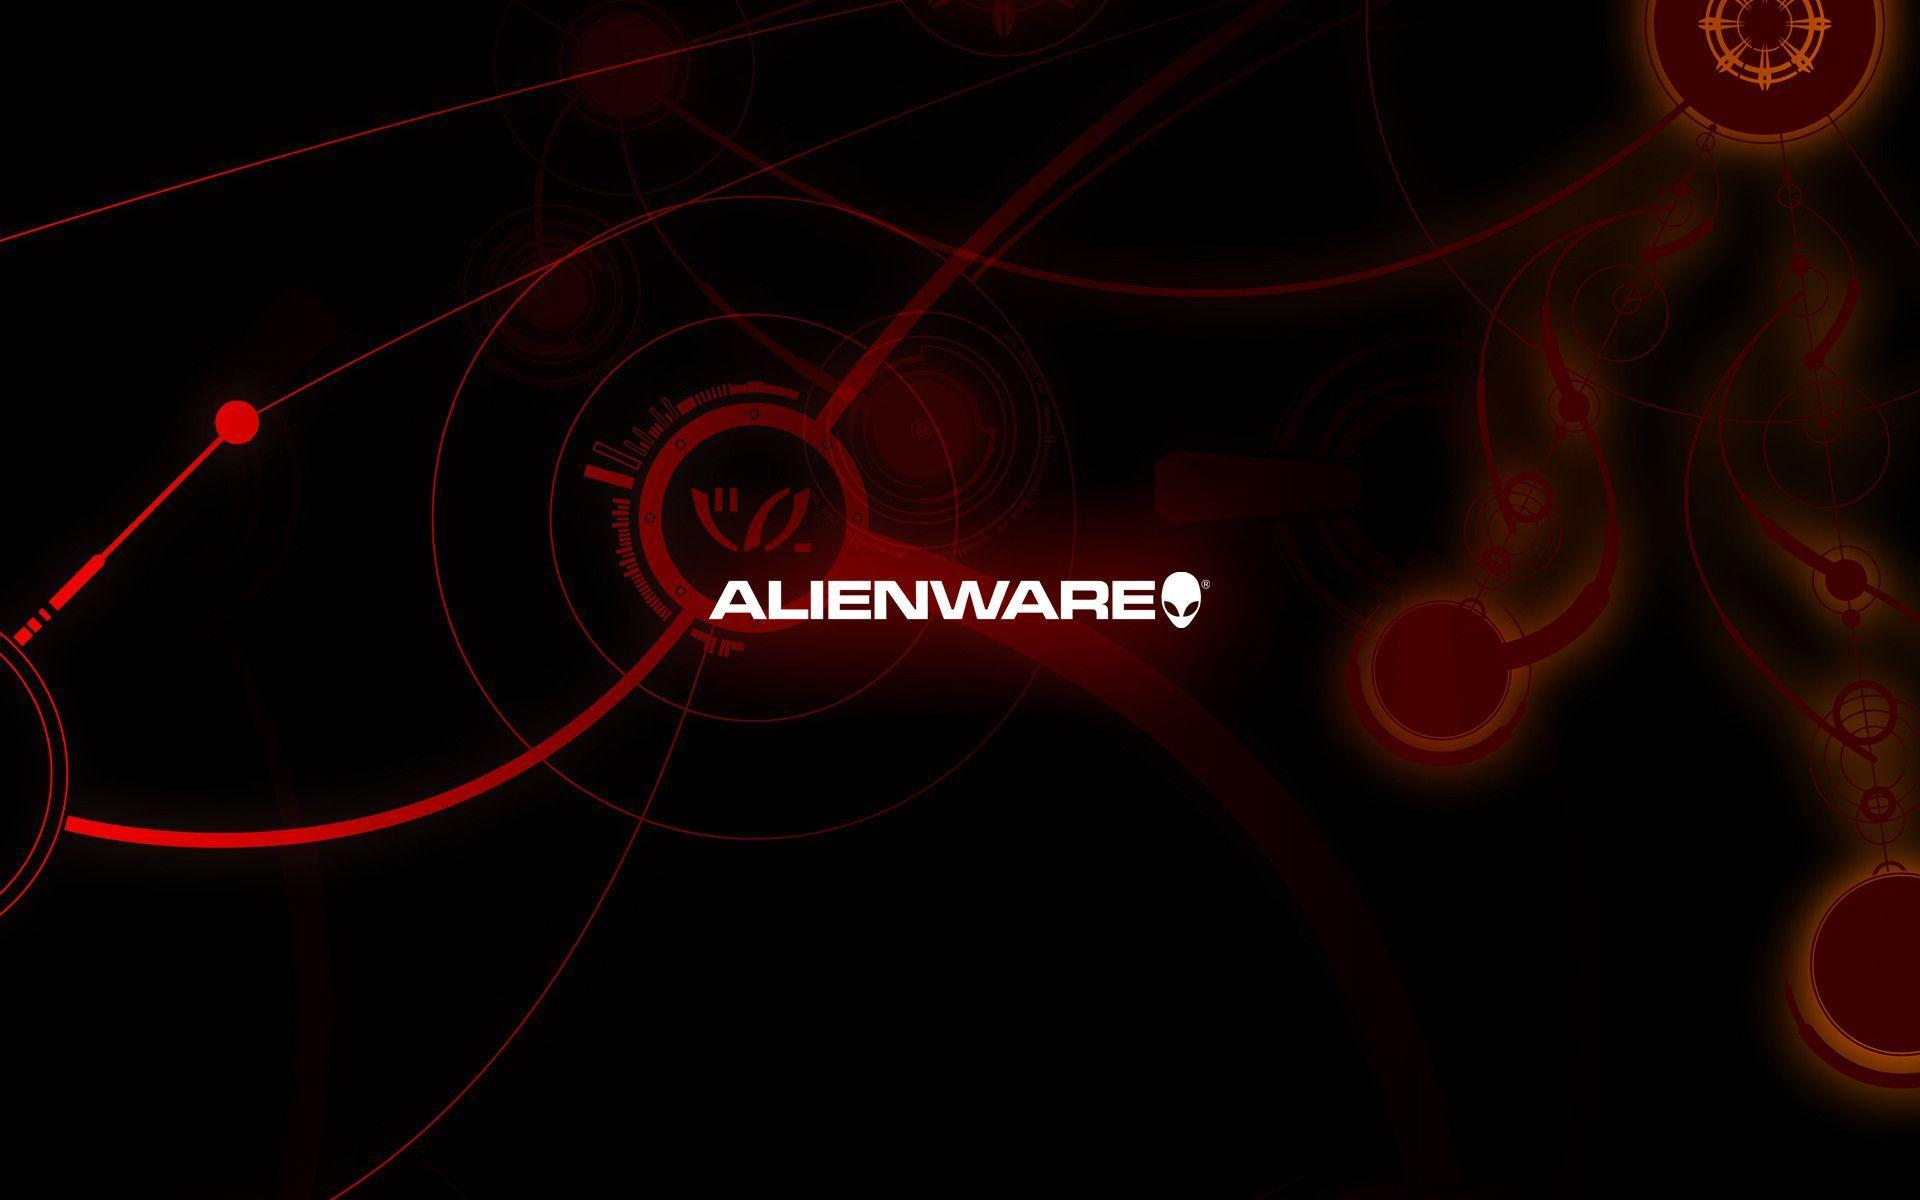 alienware wallpapers red - photo #3